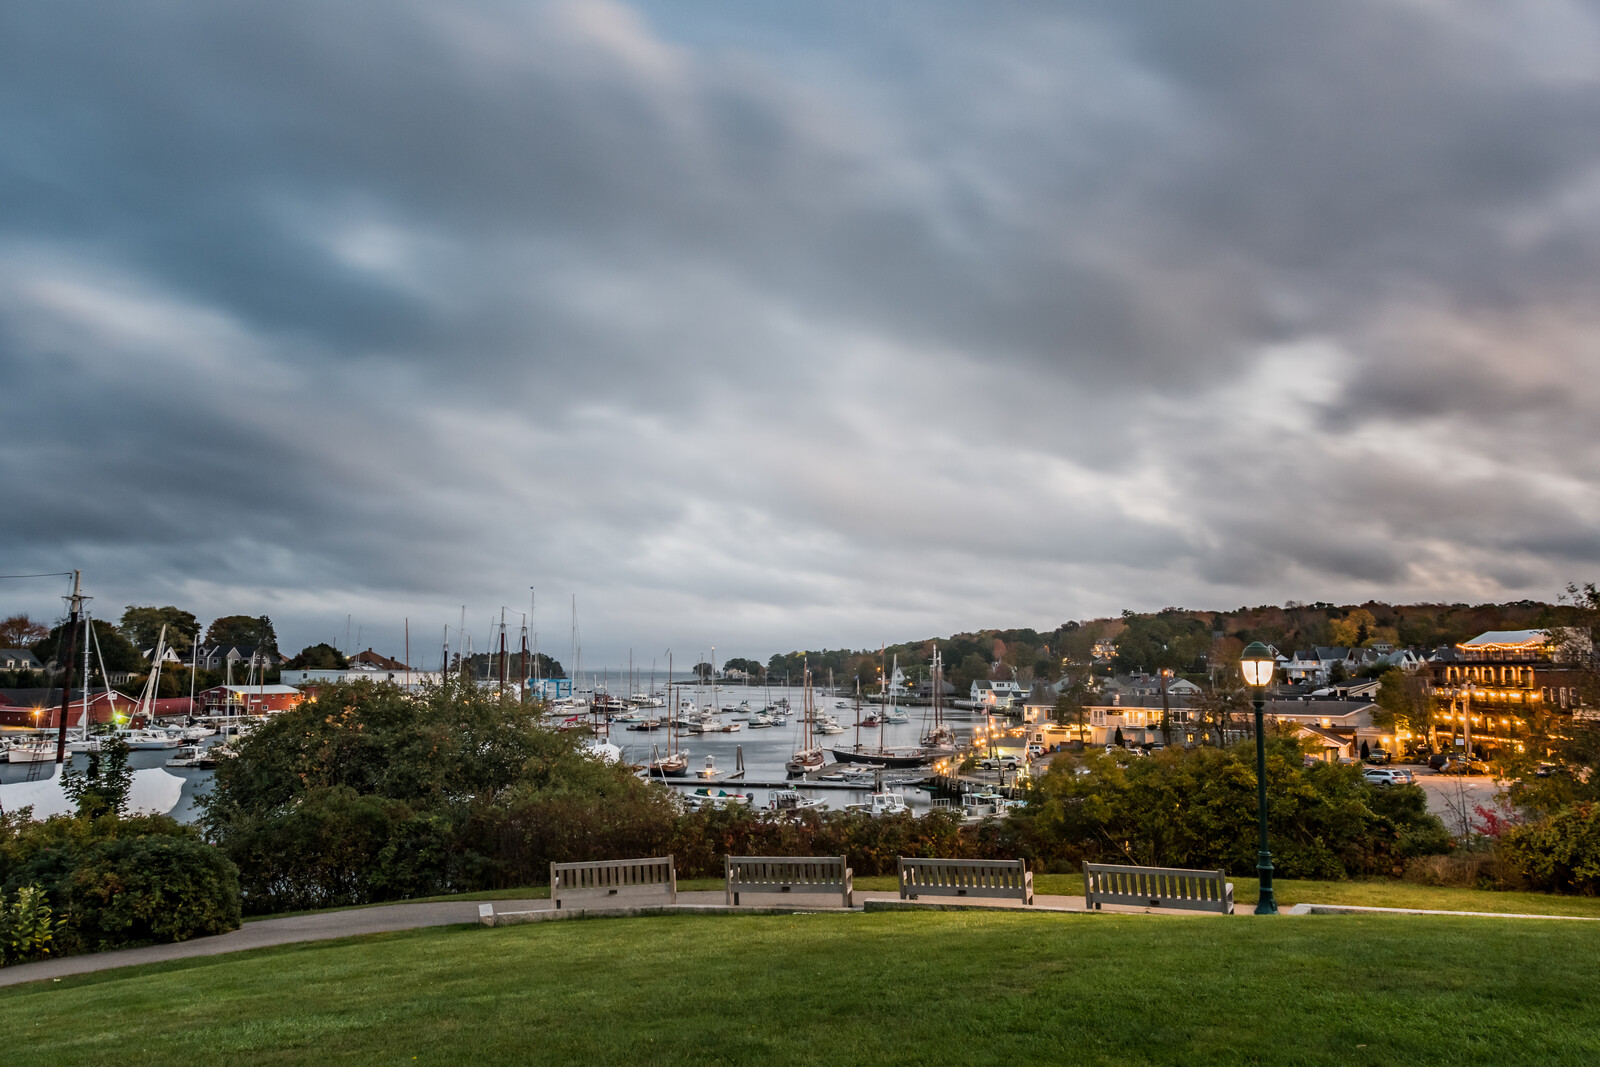 Sunset overlooking Camden Maine - Cloudy sky with boats in the harbor and evening lights on the local businesses